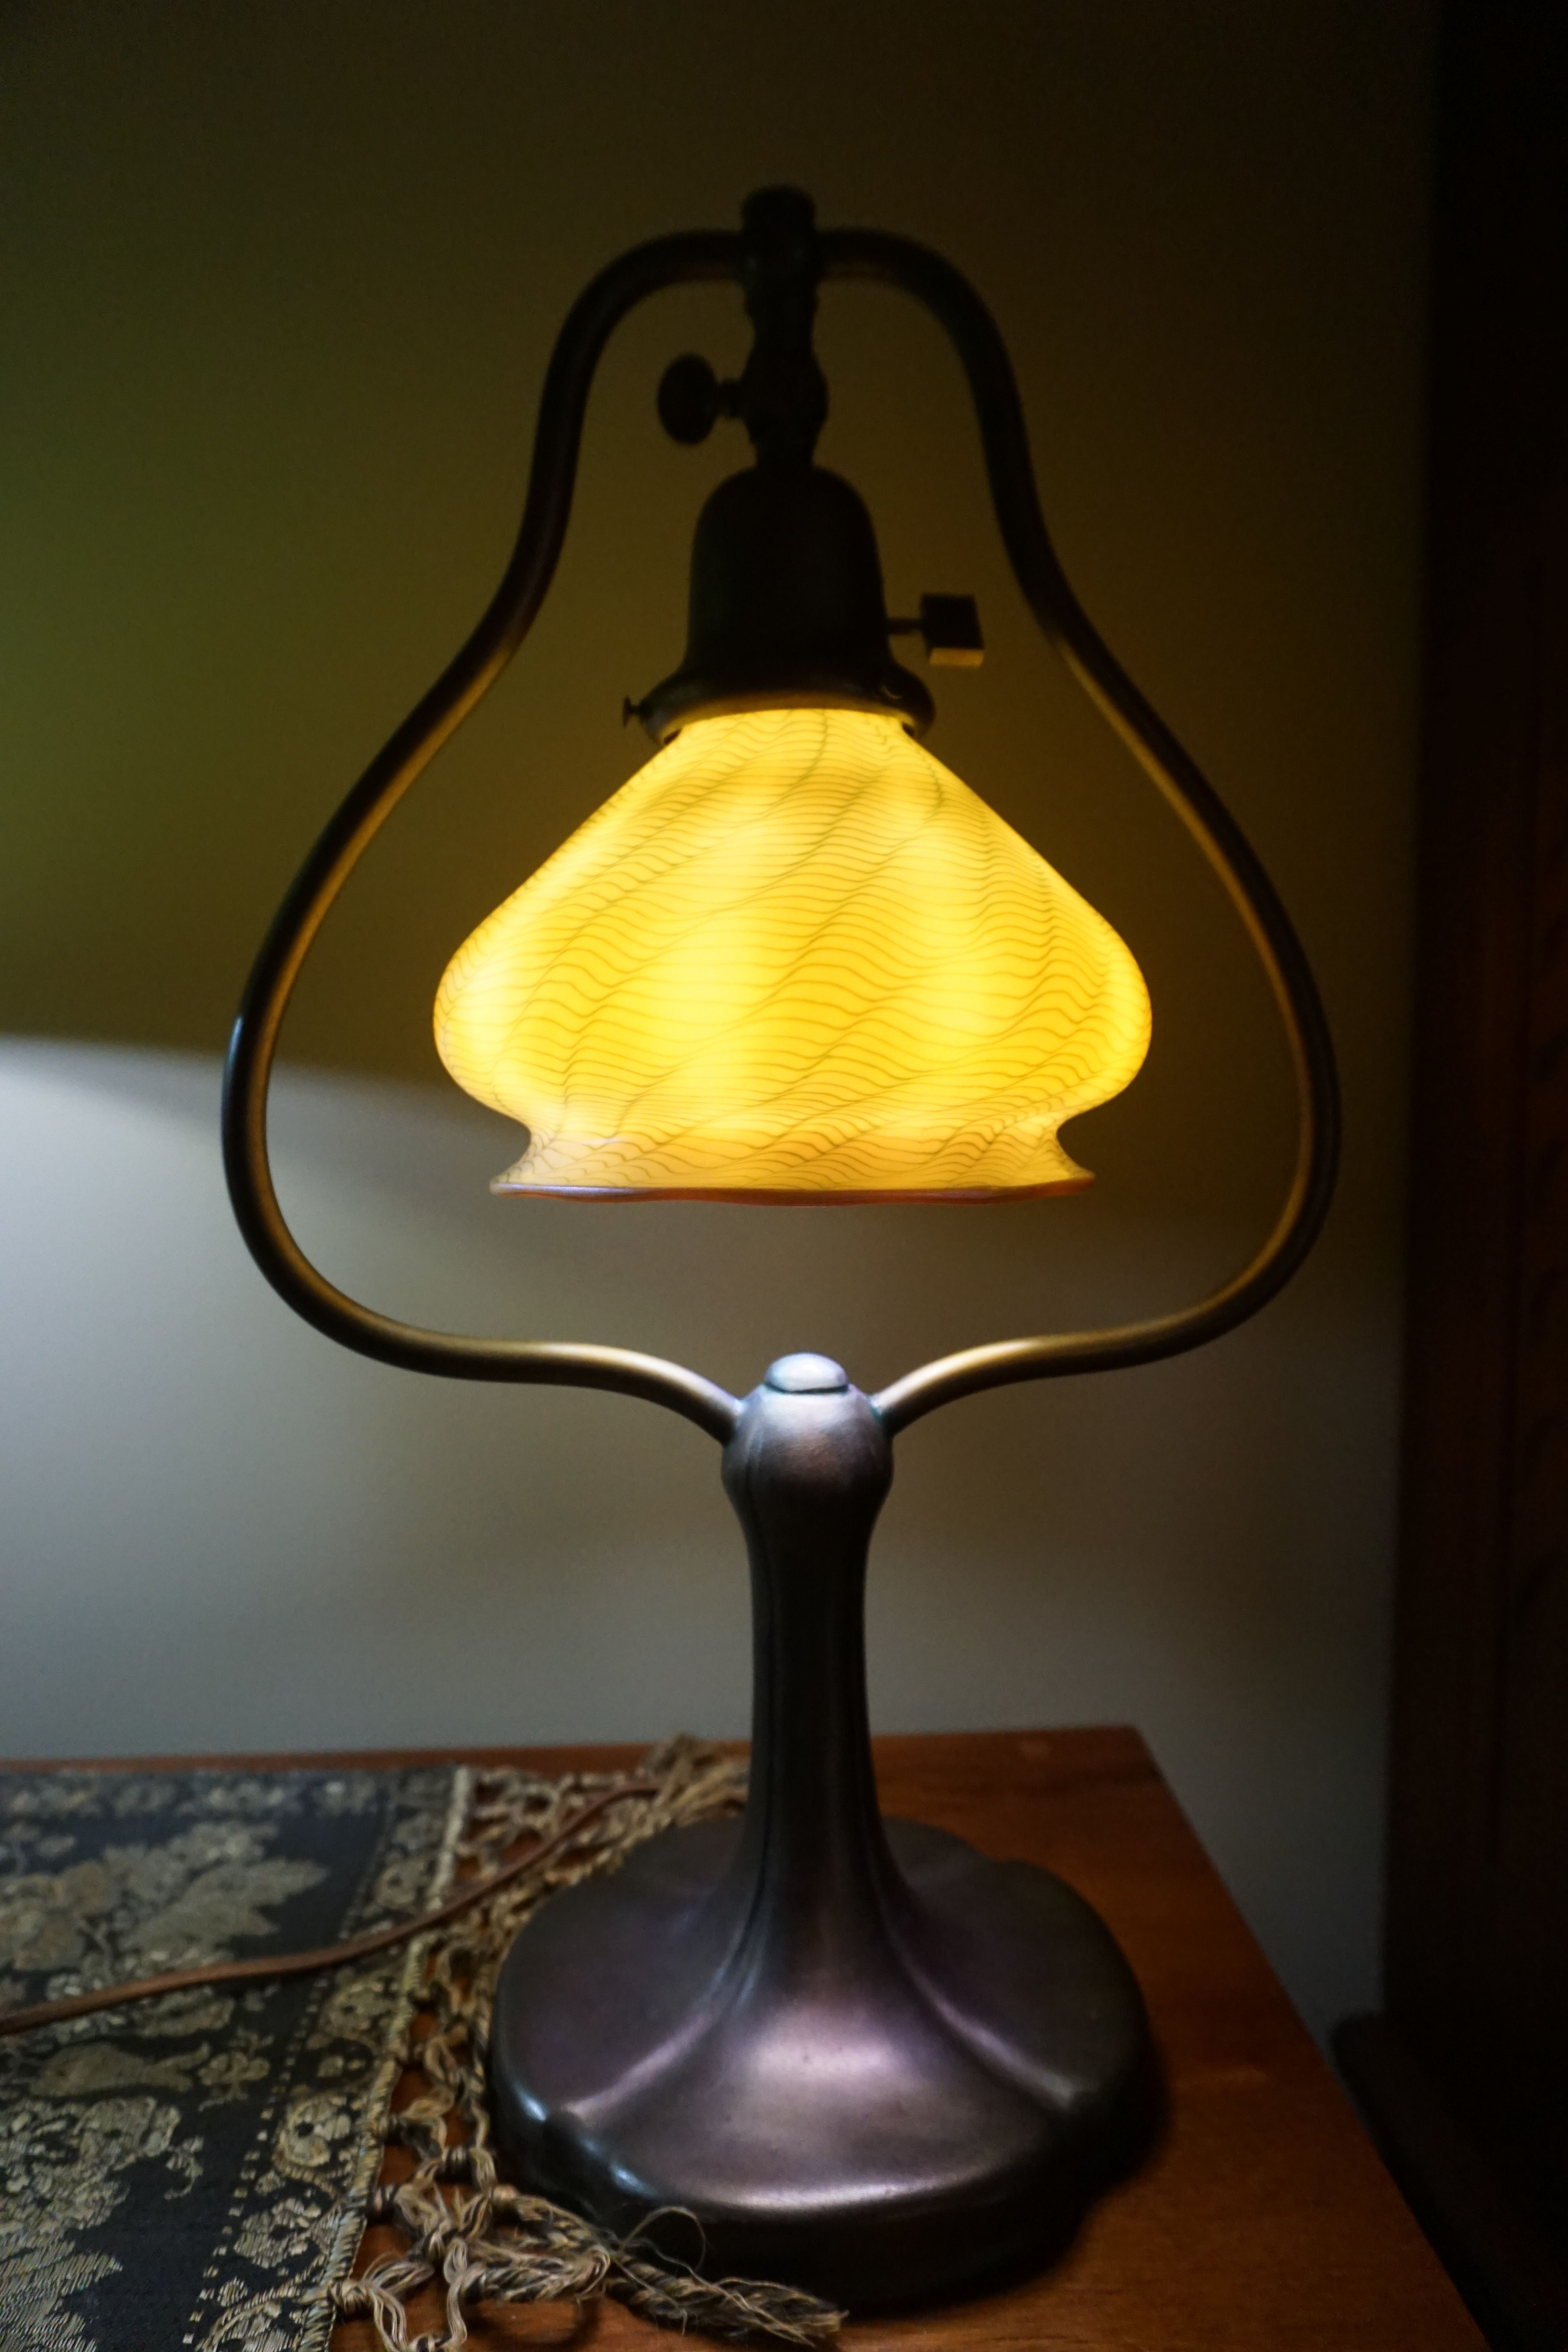 Home Page Fickle Moon Antiques In 2020 Antique Lighting Lamp Vintage Lighting